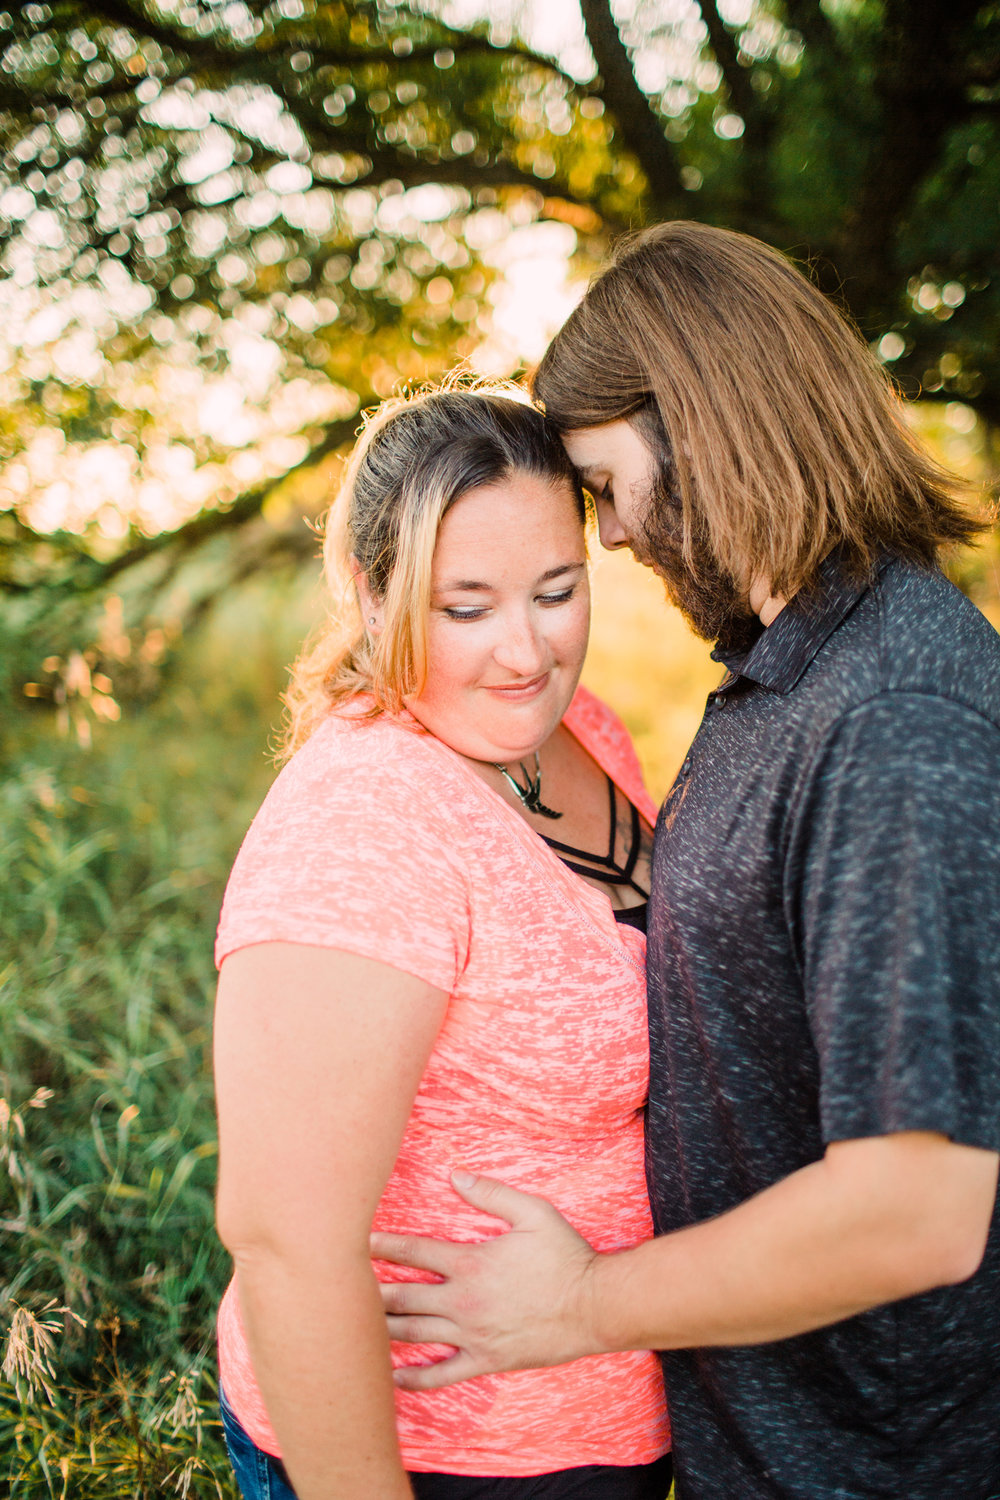 Engagement-Photography-Brushy-Creek-Recreation-Area-Lehigh-Iowa-embracing-with-girl-looking-down-iowa-engagement-photographer.jpg